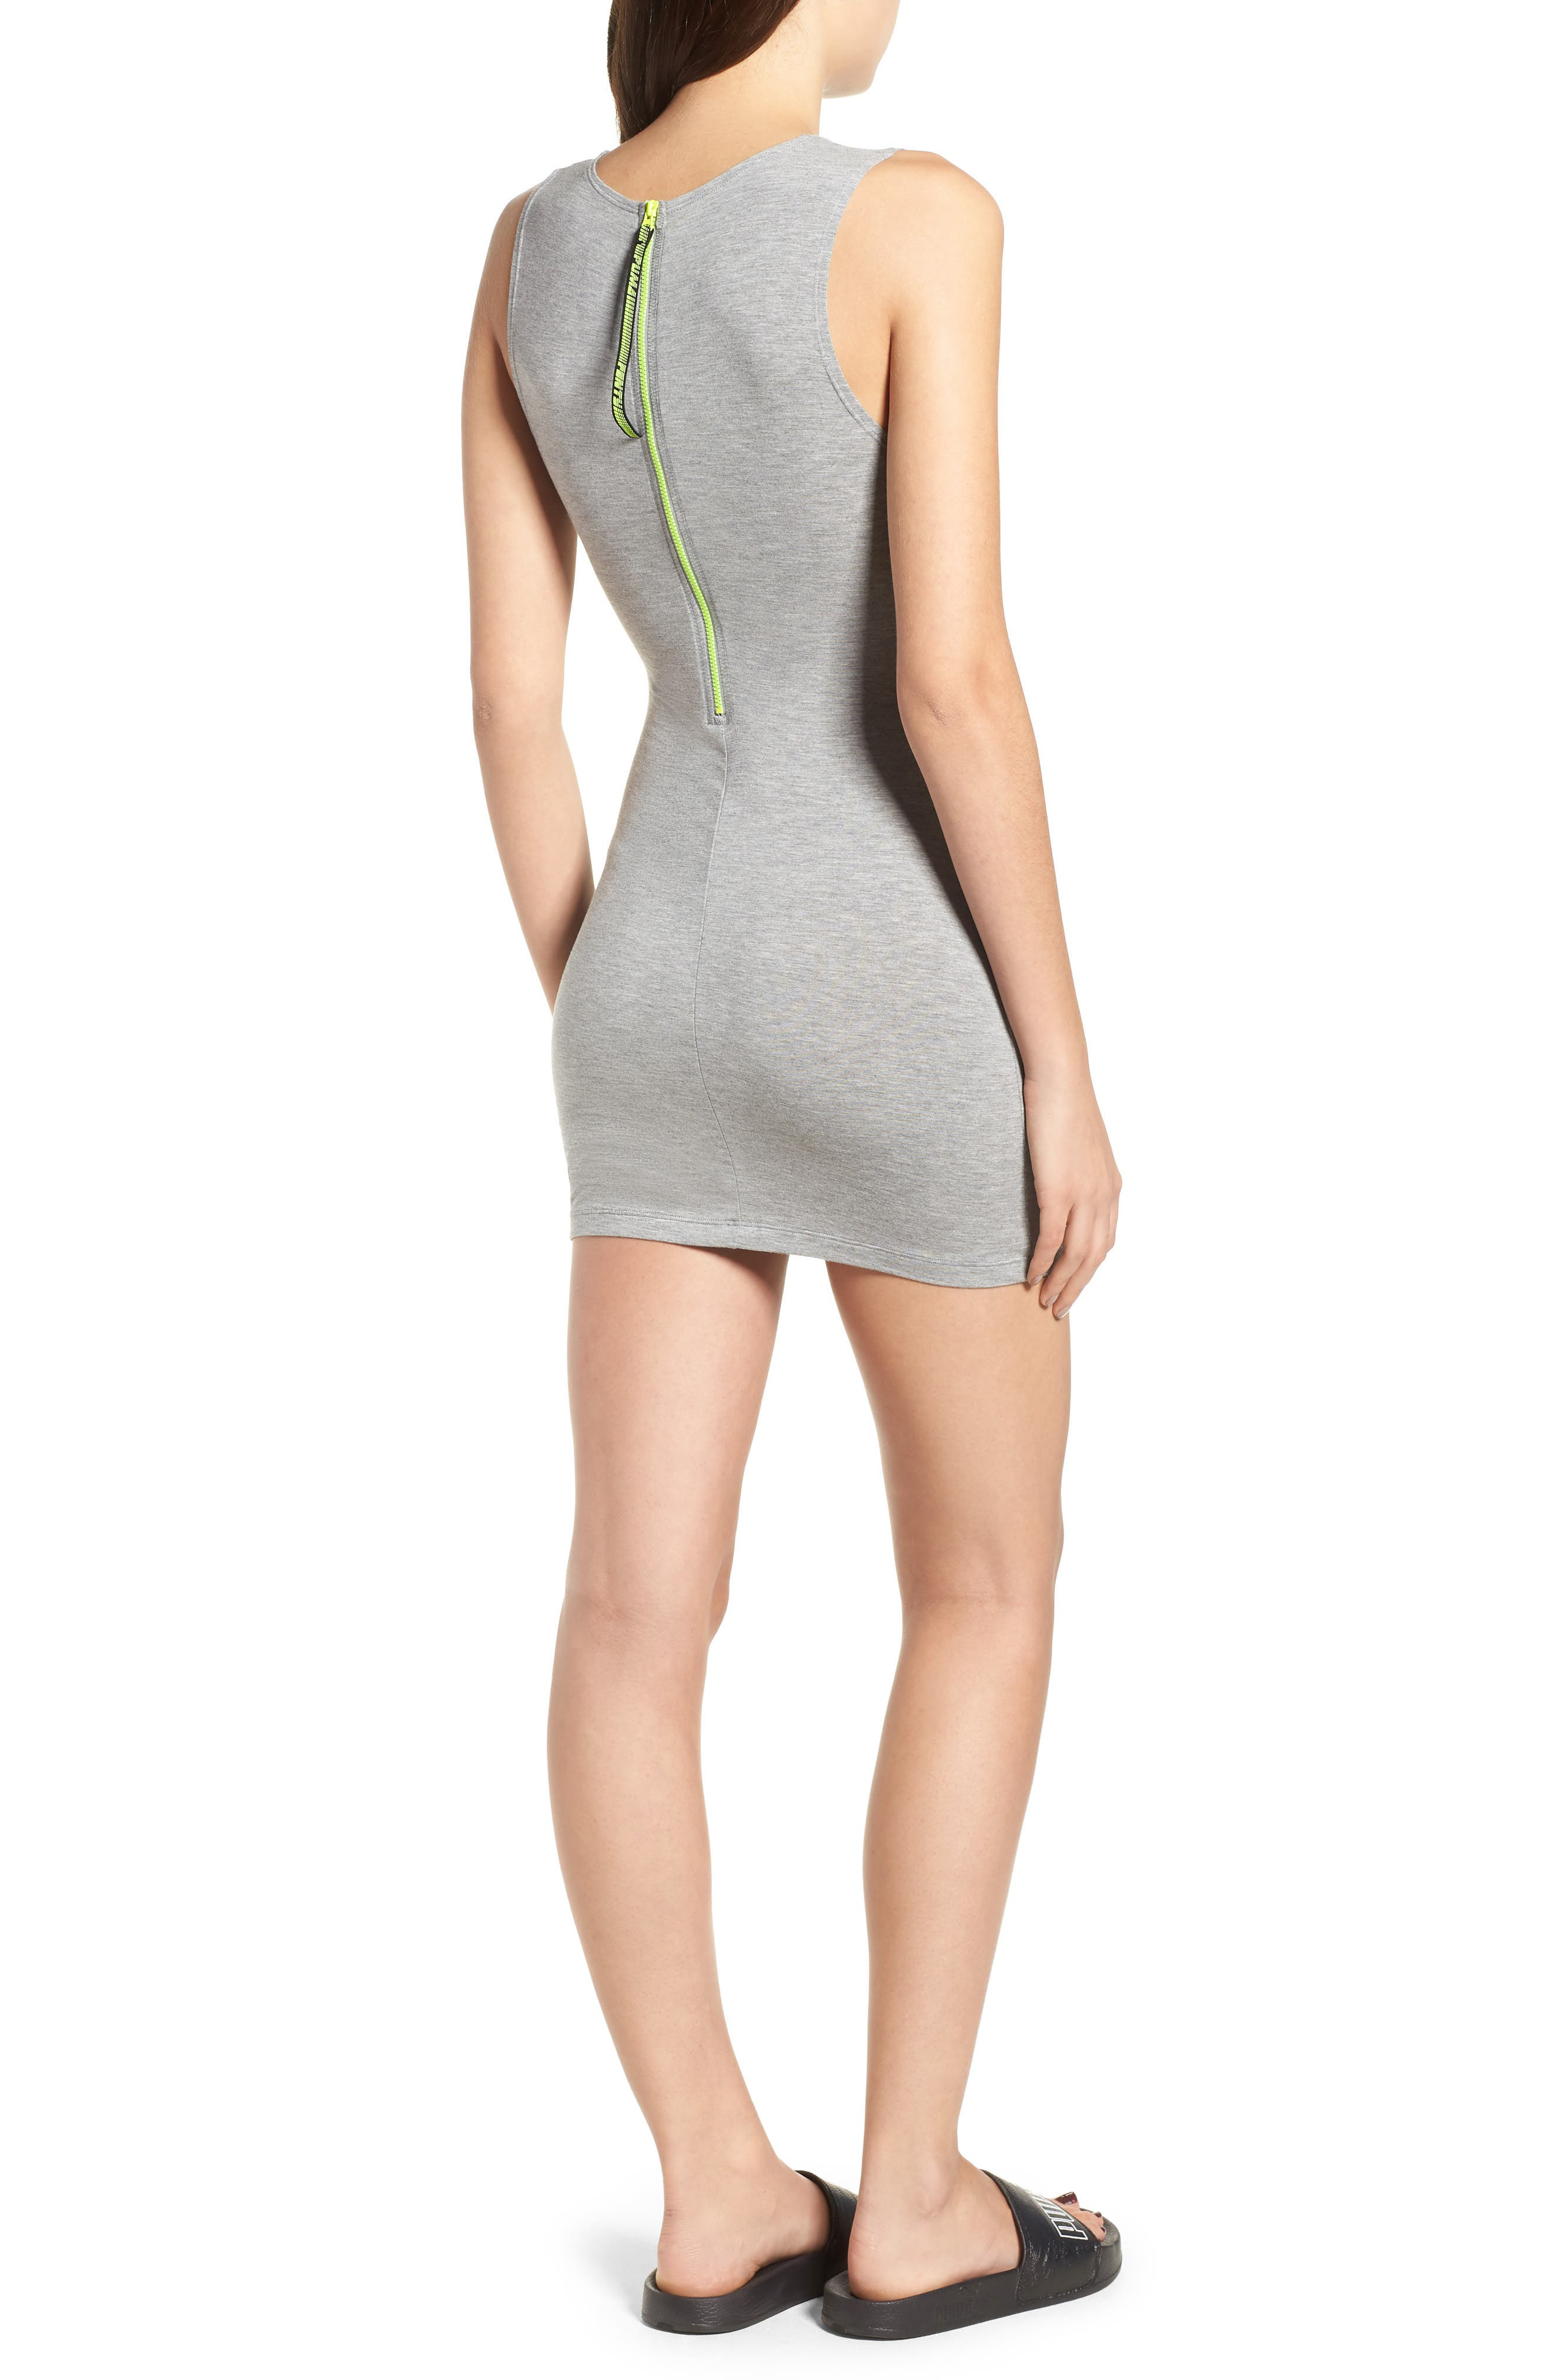 PUMA by Rihanna Body-Con Dress,                             Alternate thumbnail 2, color,                             Athletic Gray Heather